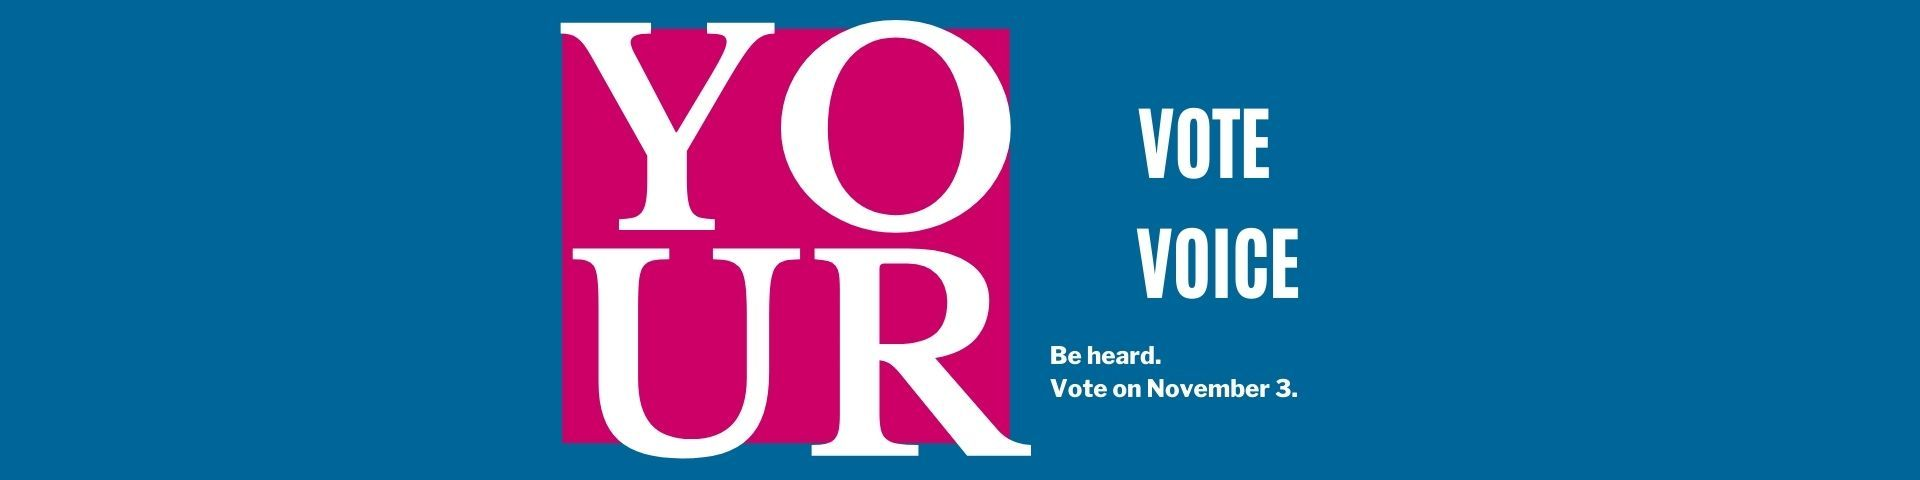 Red and Light Blue Voter Education Banner2